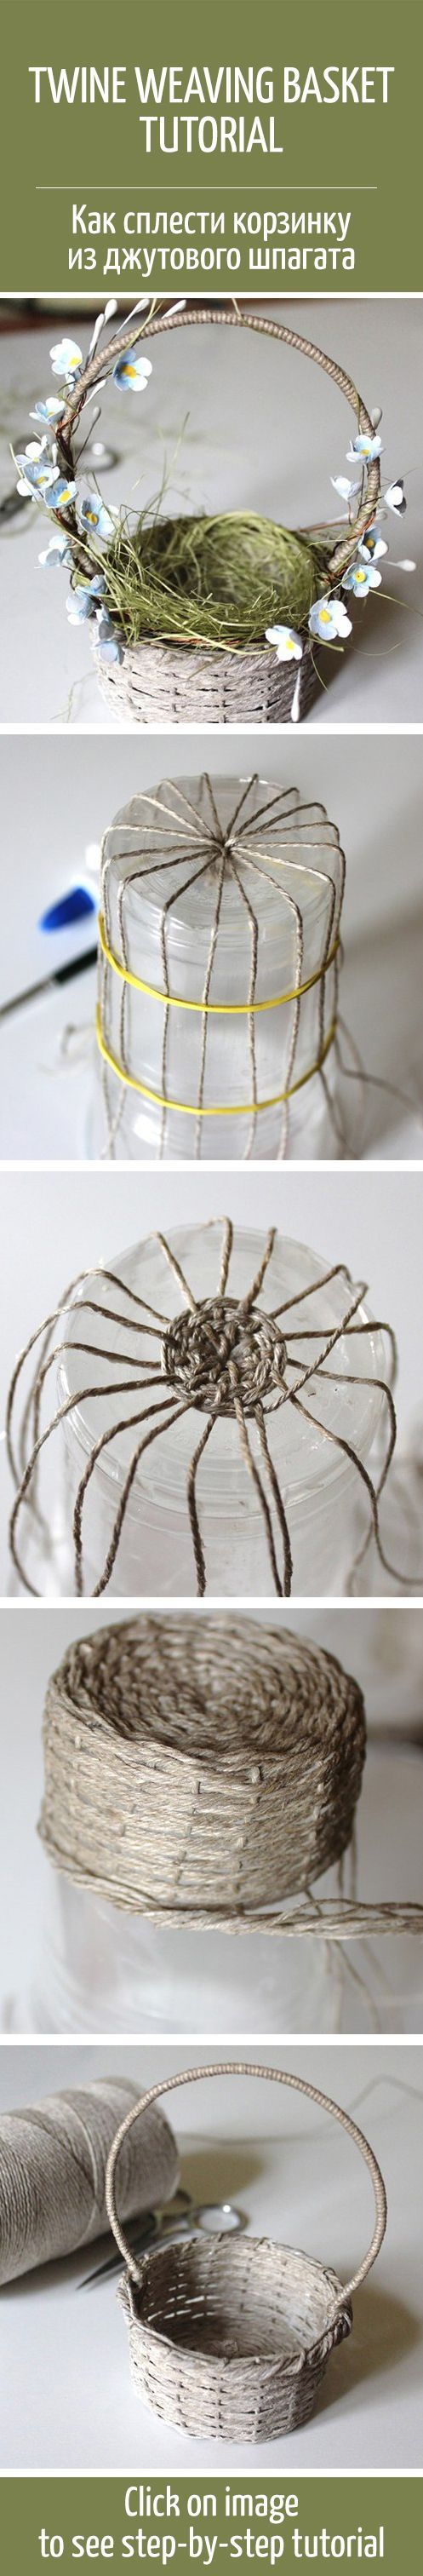 Twine weaving basket tutorial / diy - handmade - home decor - cute idea!